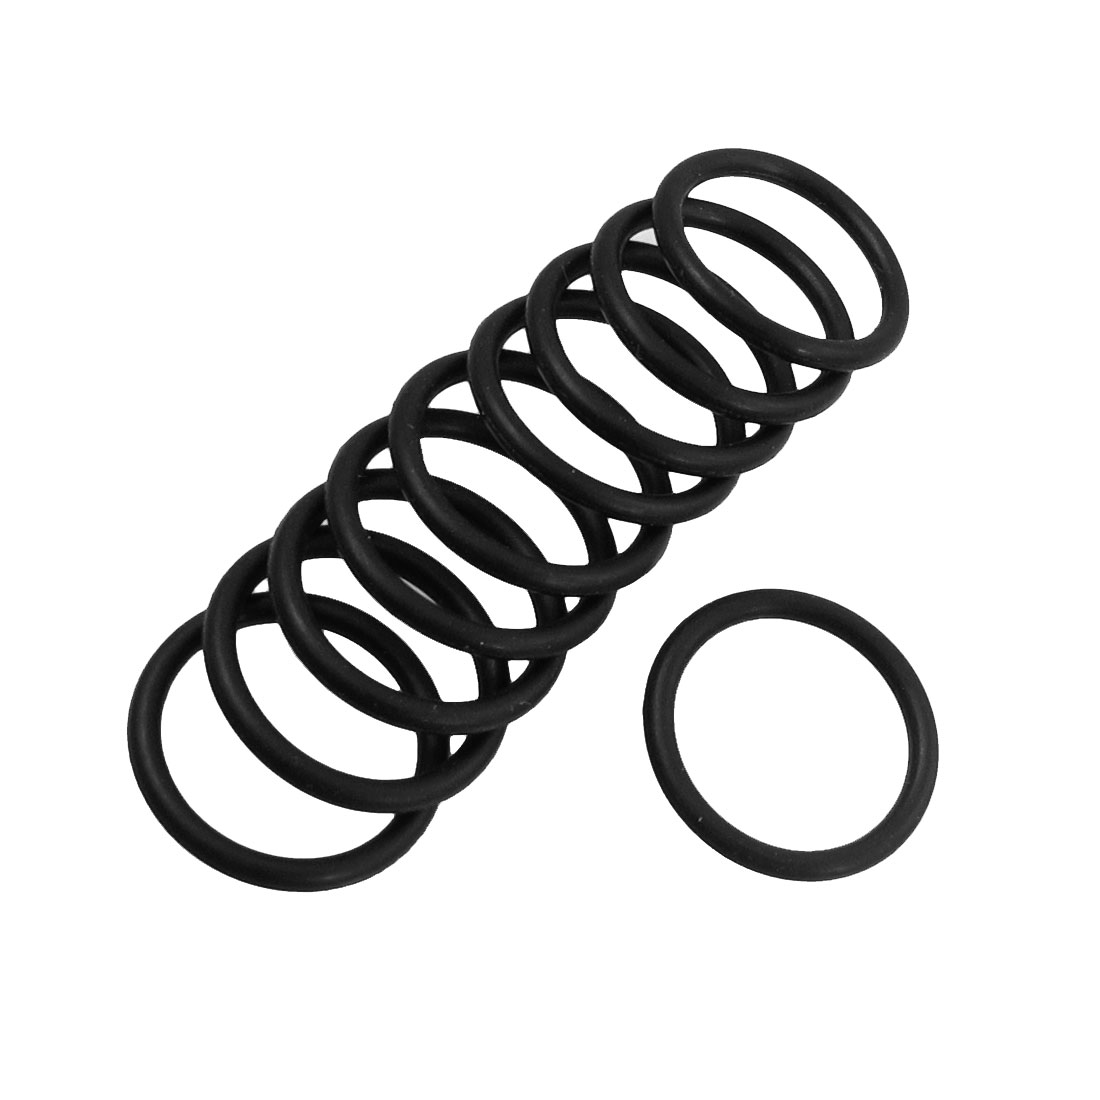 10 Pcs 19mm x 2mm Rubber Sealing Oil Filter O Rings Gaskets Black